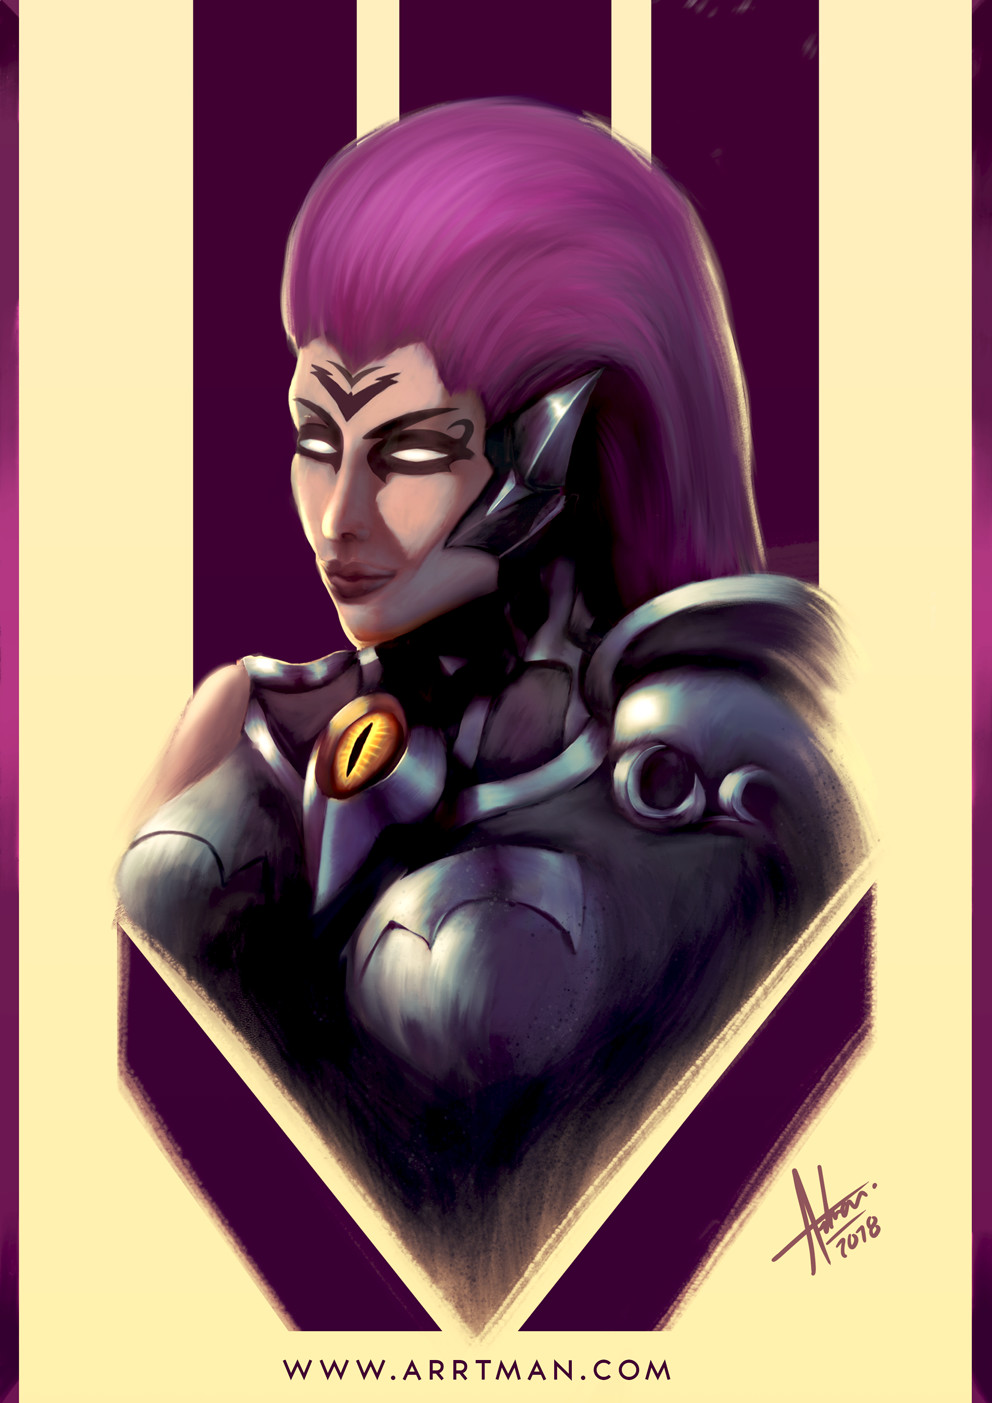 Fury (Dark Siders 3)